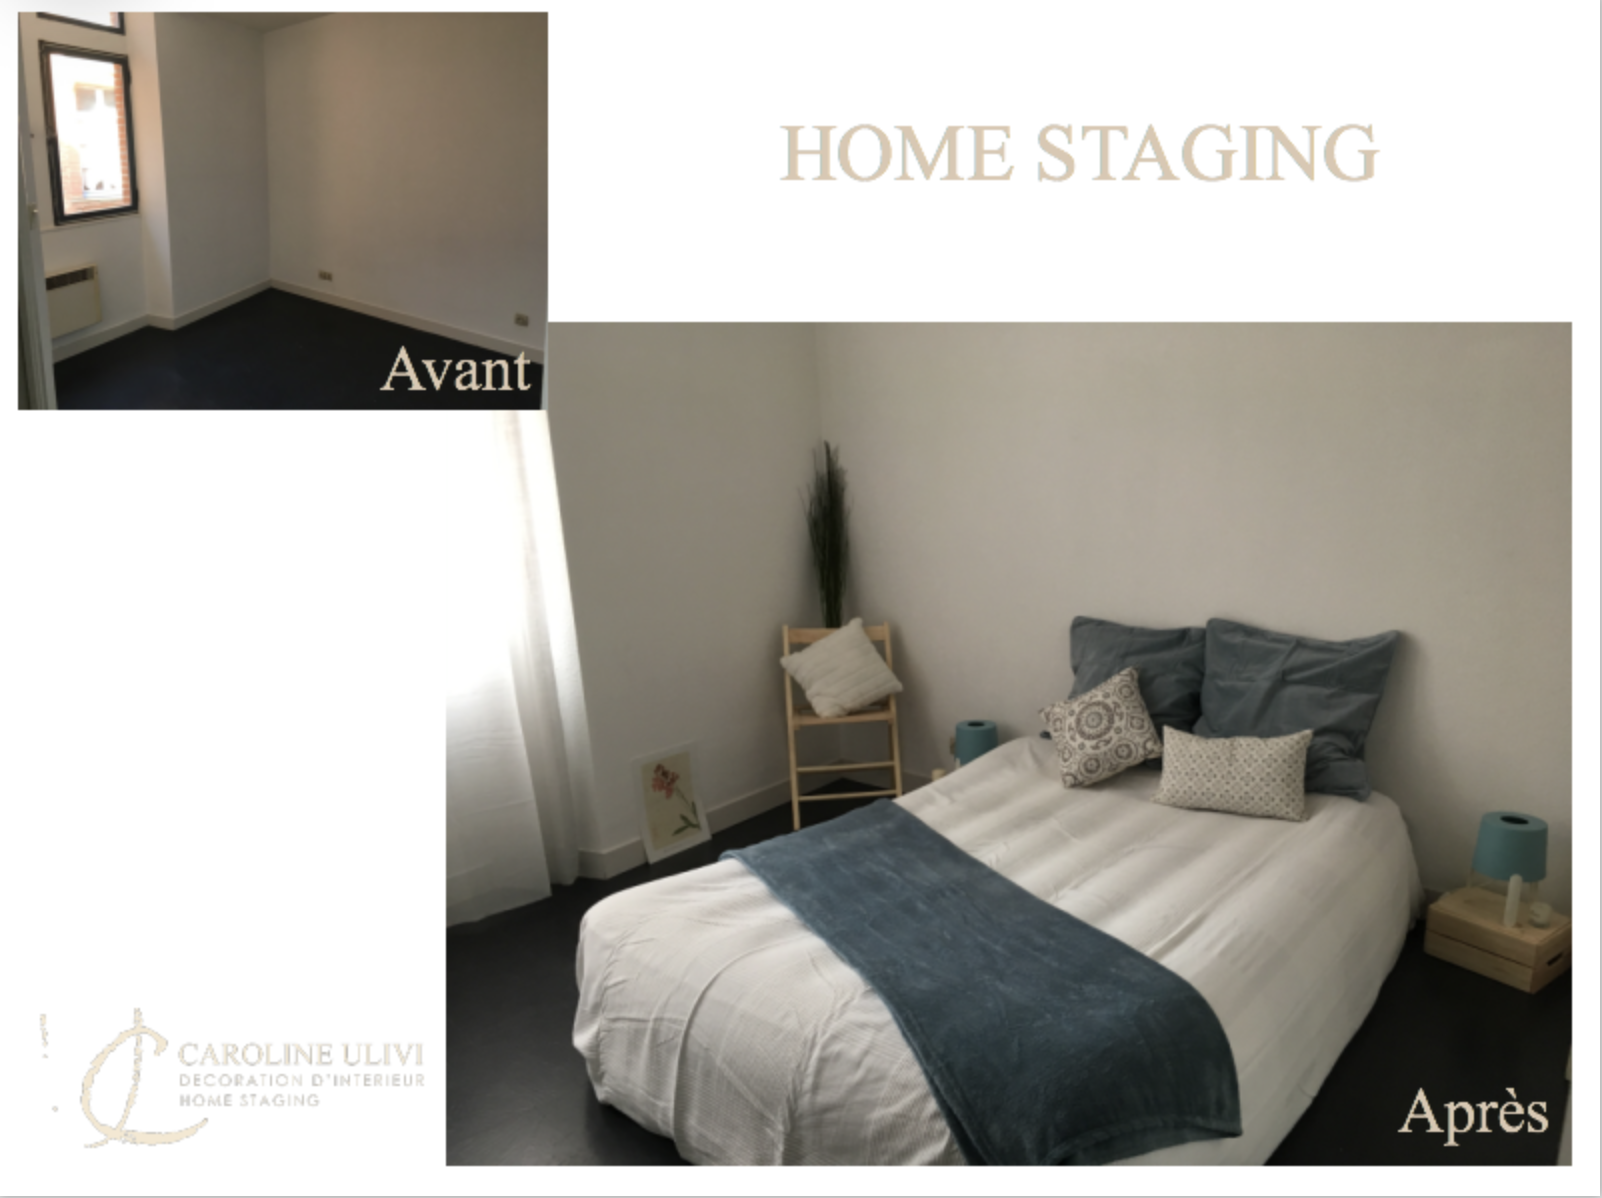 Home Staging Montauban Tarn Et Garonne